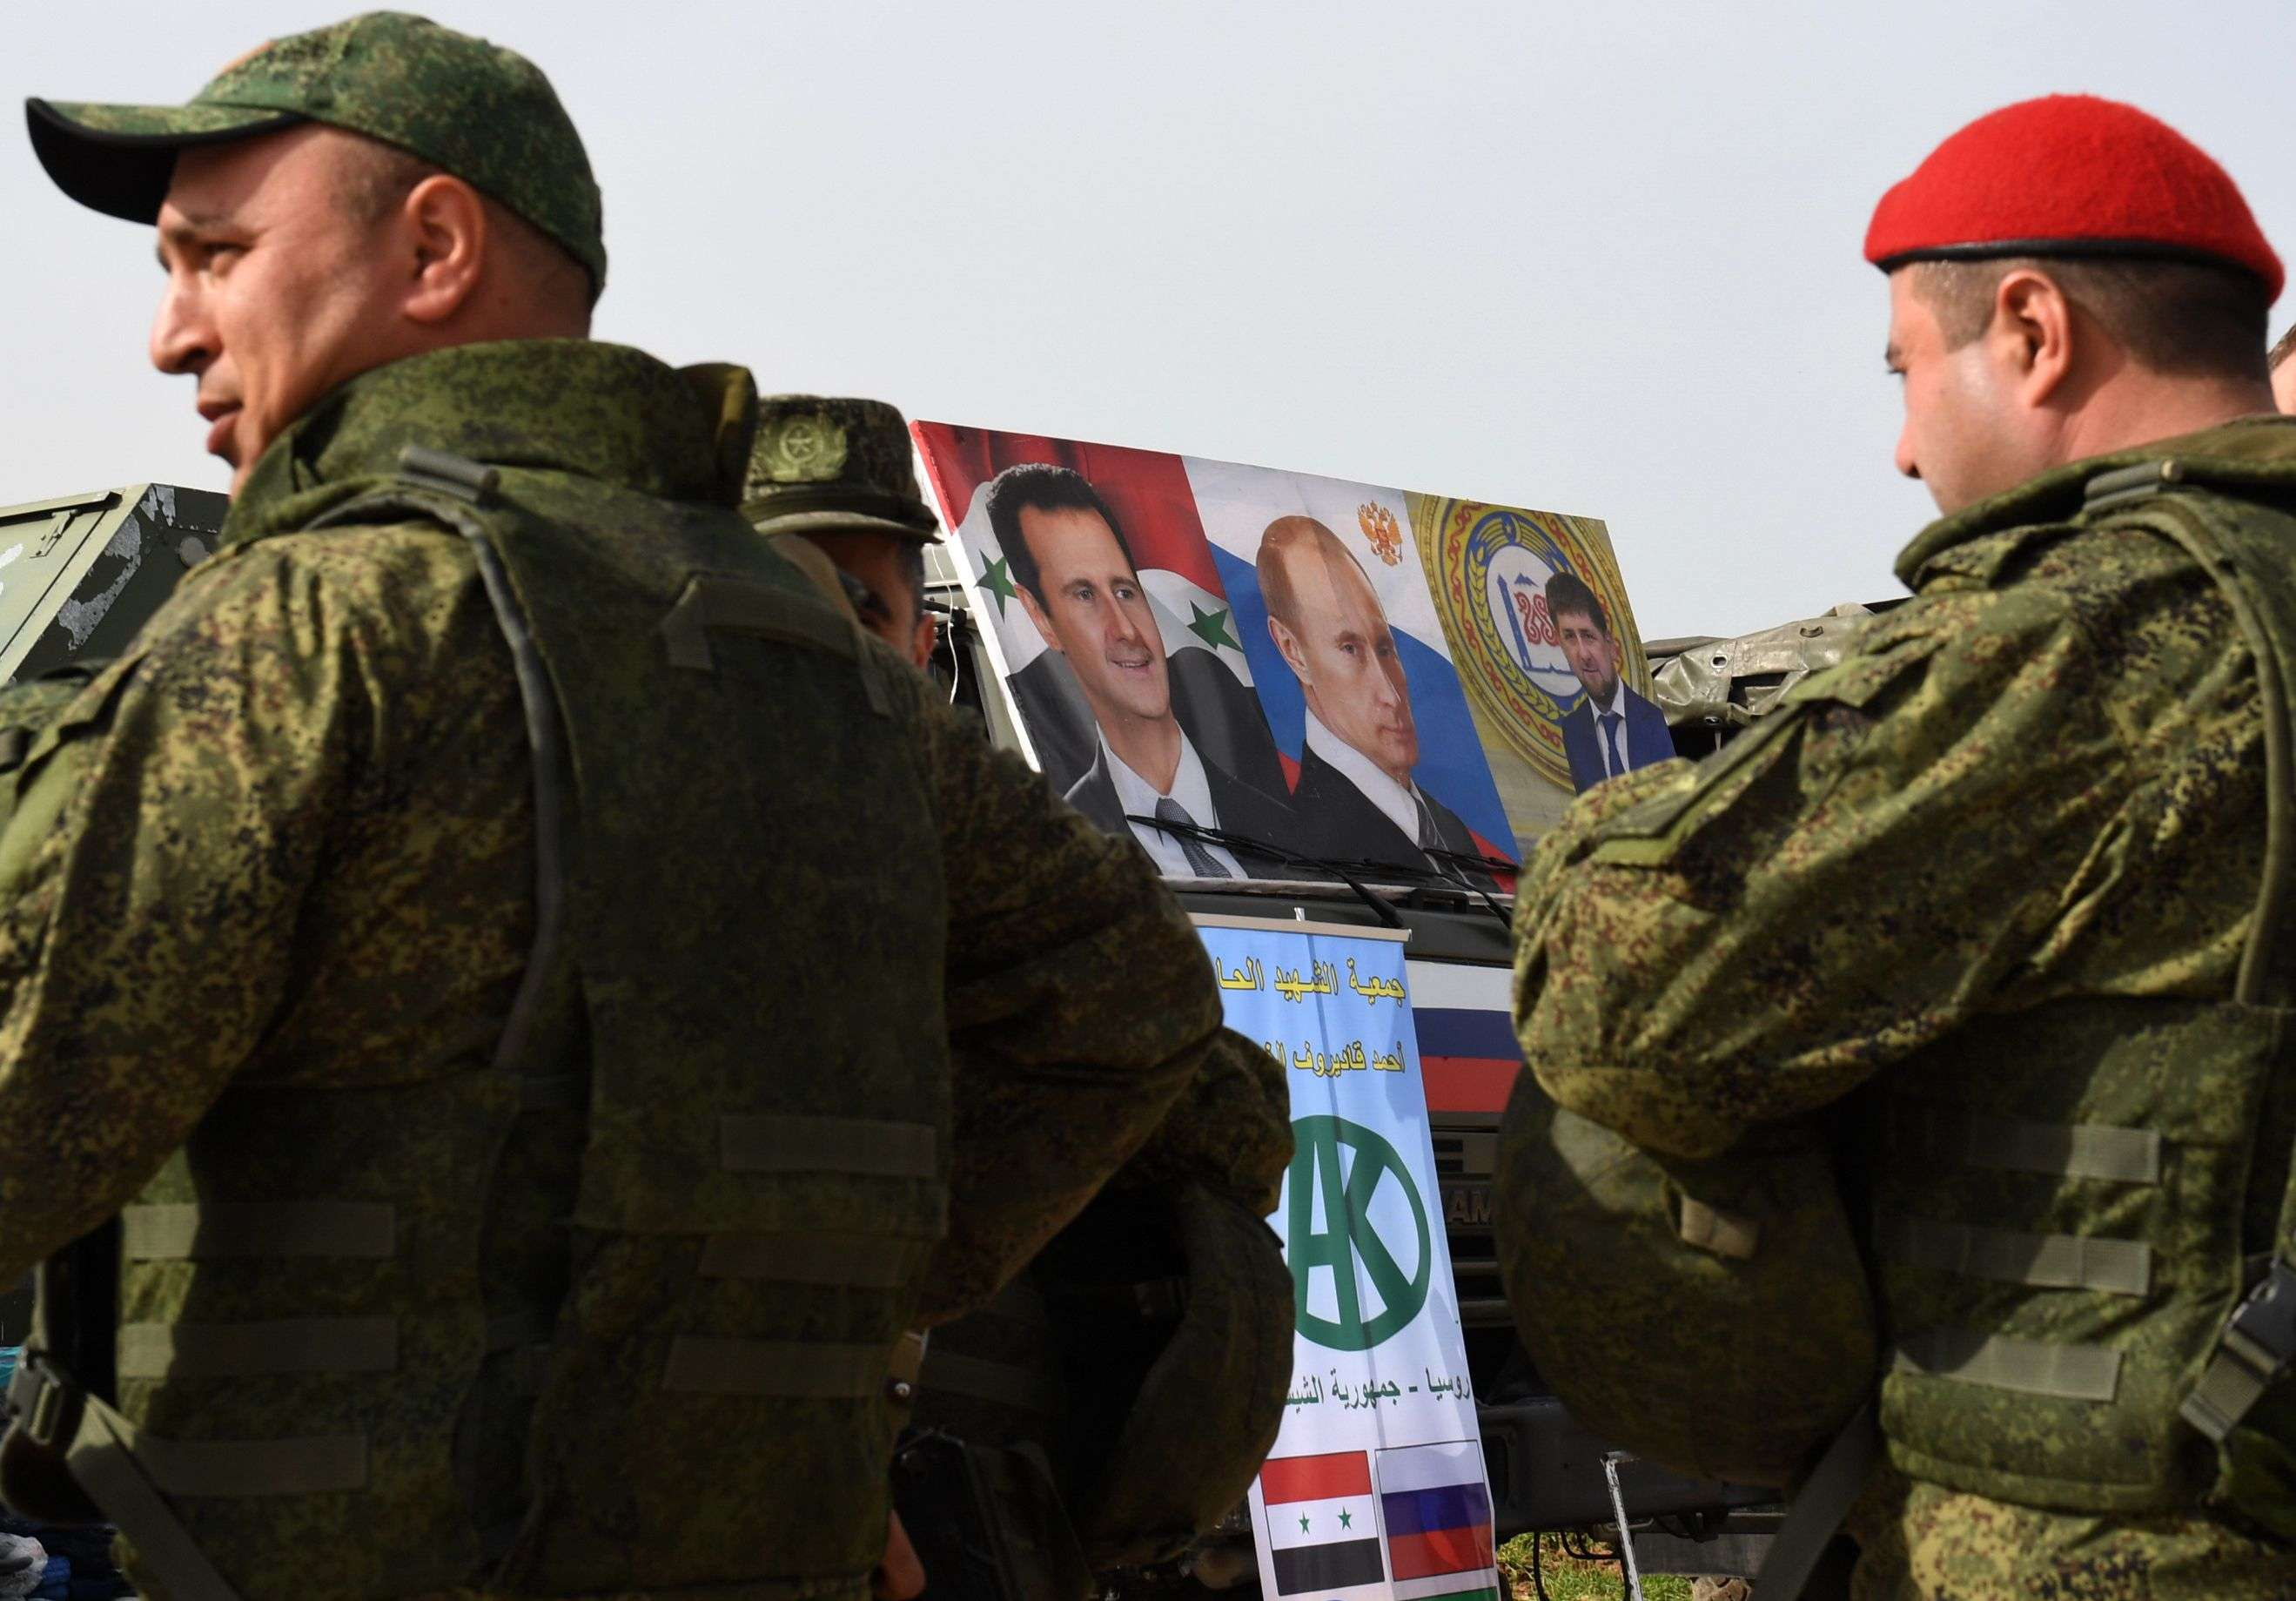 Russian soldiers stand near a vehicle bearing images of Syrian, Russian and Chechnyan leaders in the area of Abu al-Duhur, on March 4. (AFP)